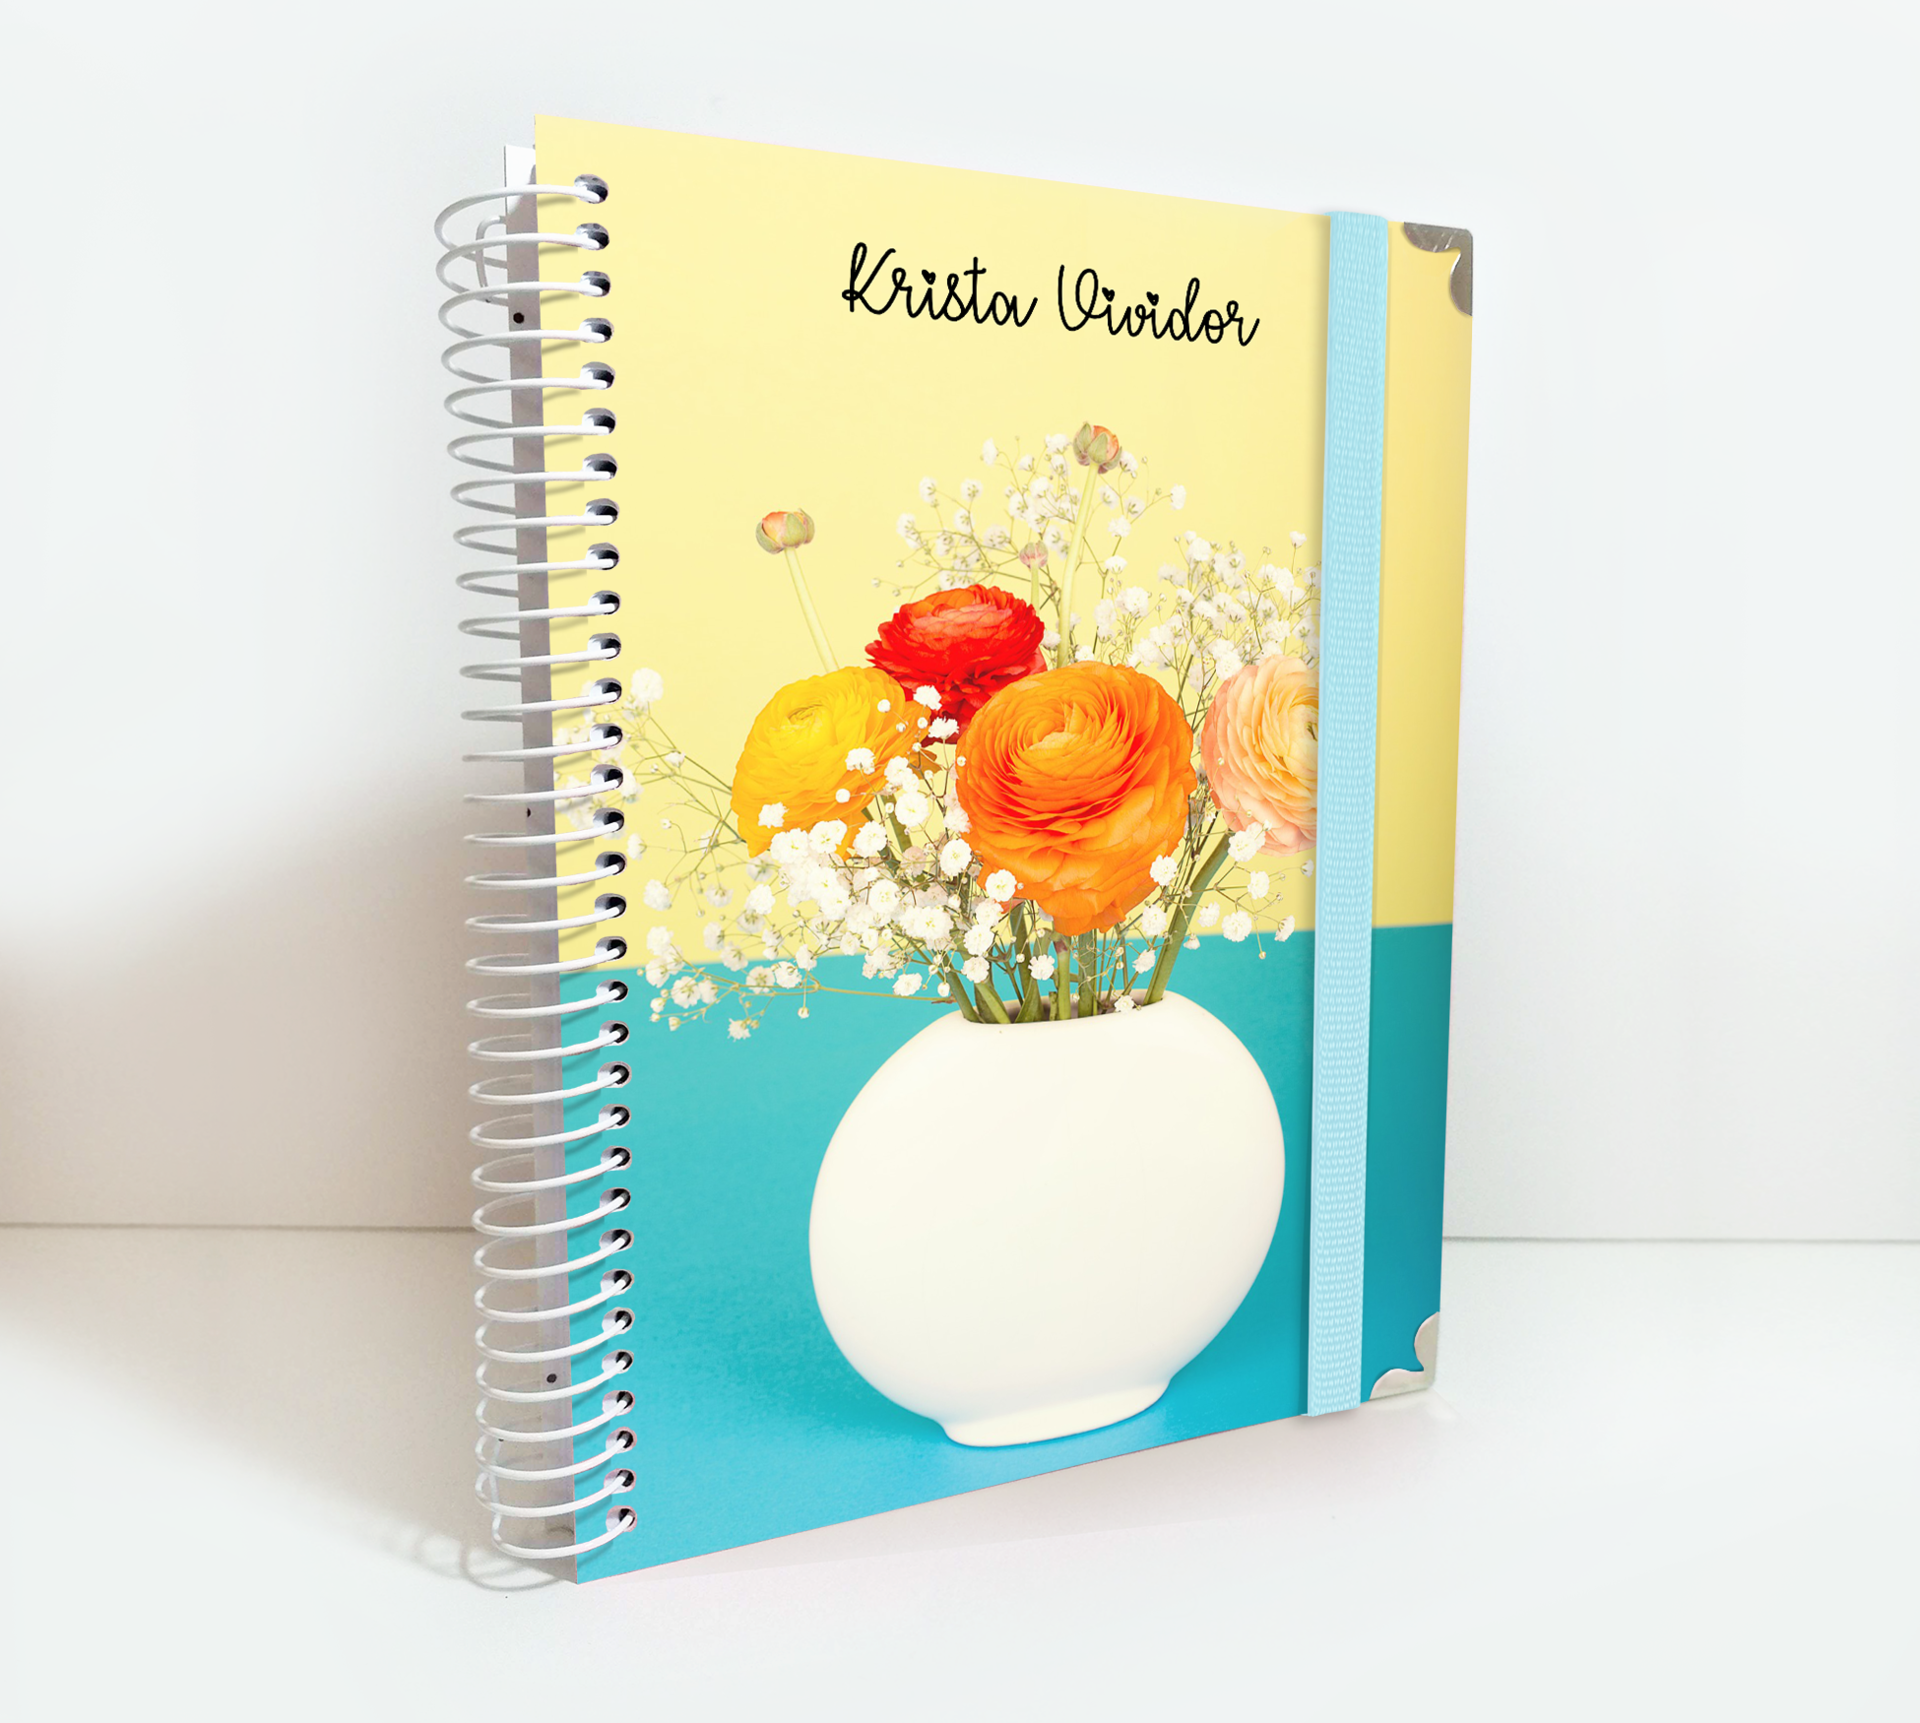 Personalized 2020 Hard Cover Weekly Planner Notebook White Flower Vase Pot